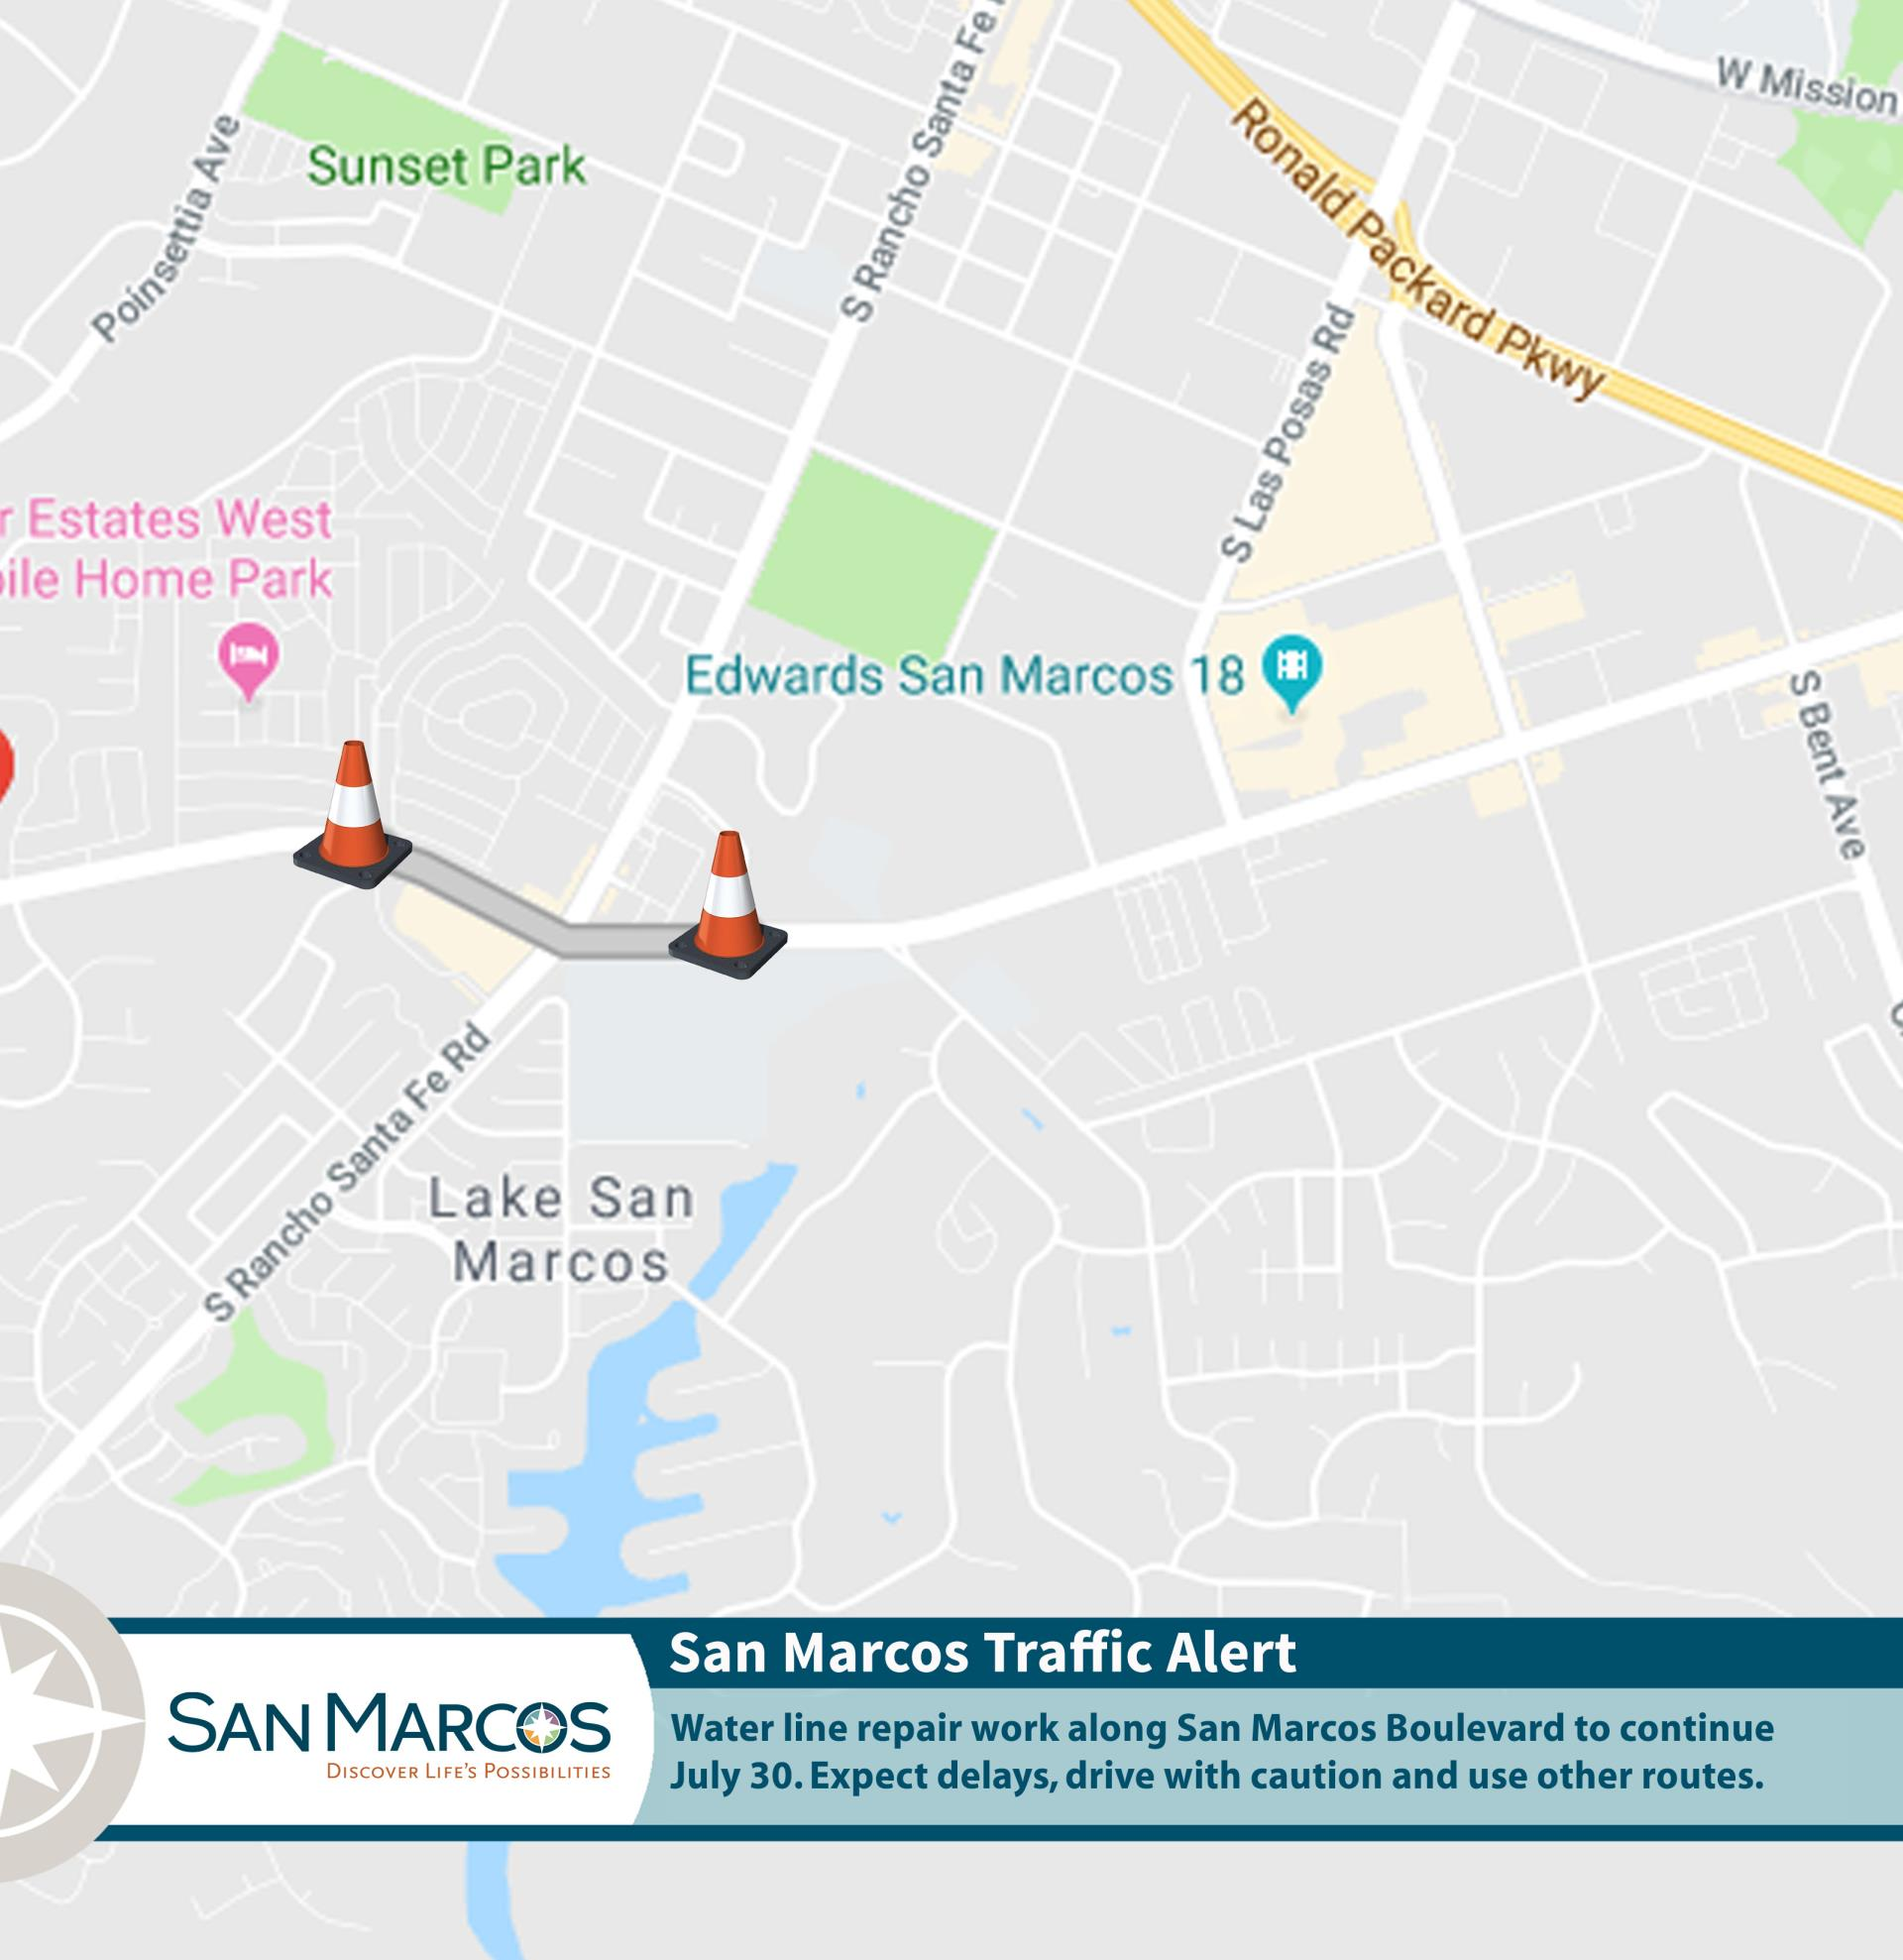 Mapped traffic alert for San Marcos Boulevard on July 30